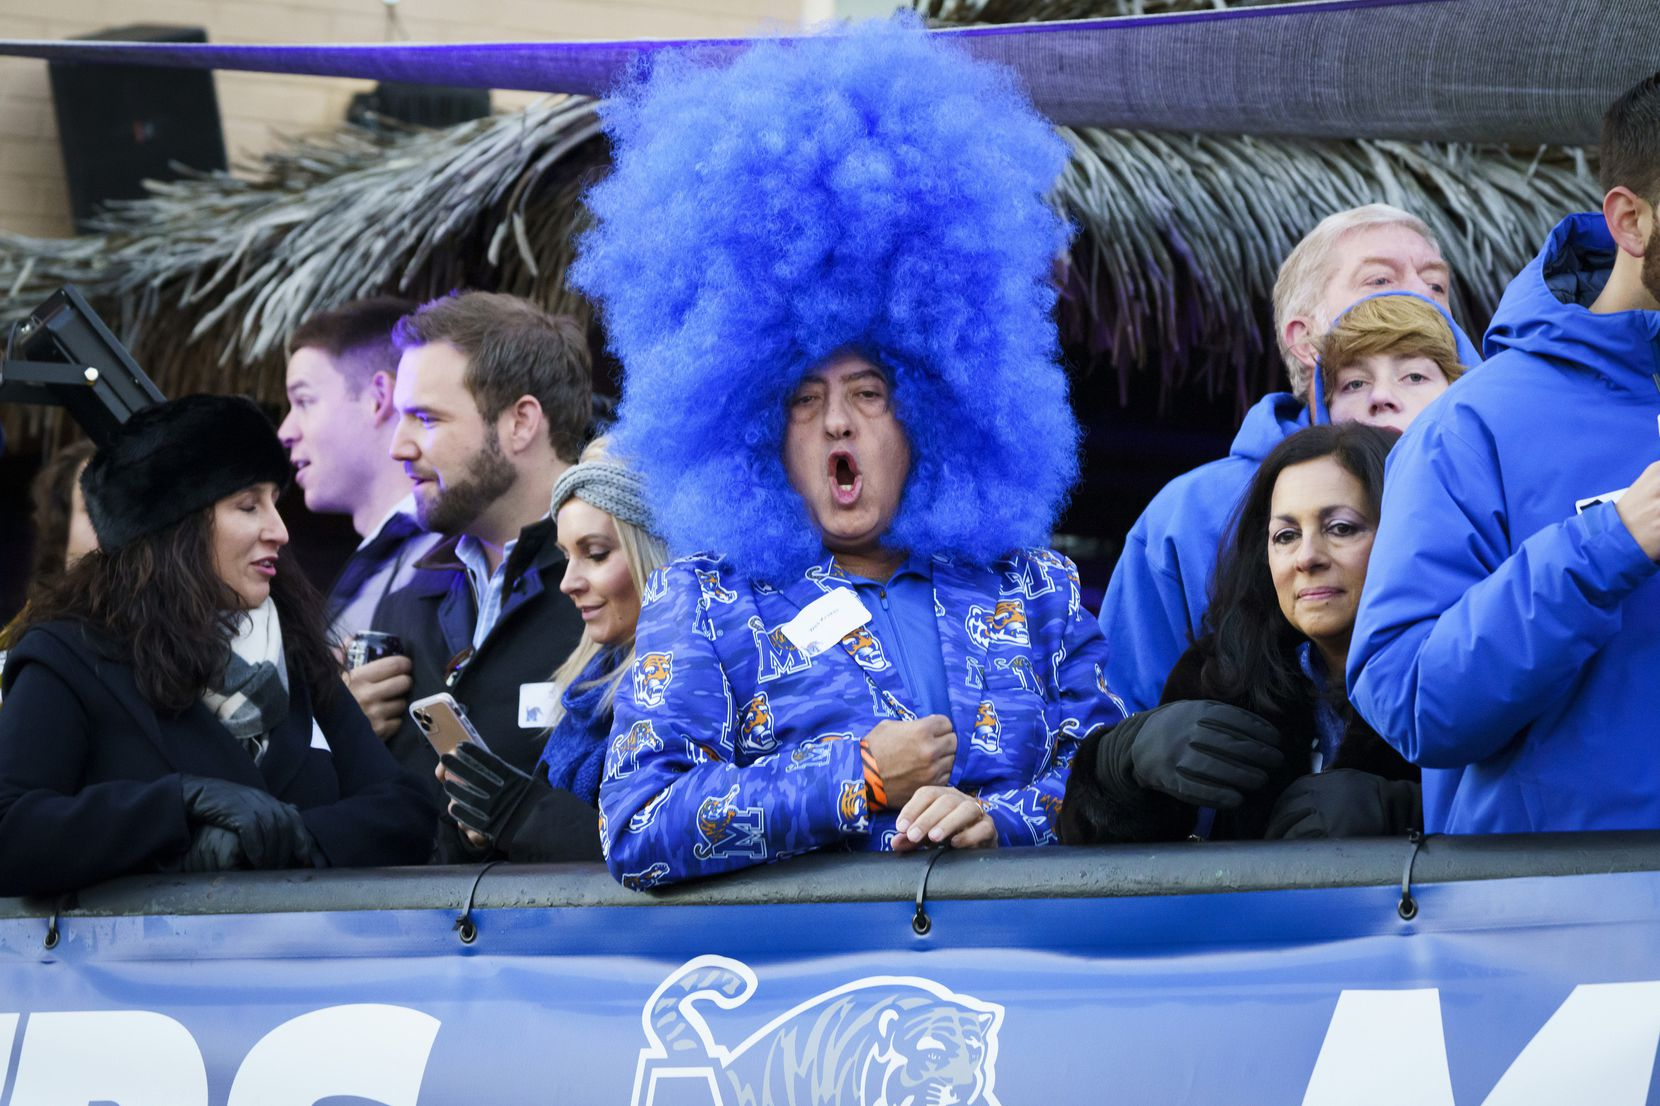 Fans yell along Beale Street during ESPN College GameDay before an NCAA football game between Memphis and SMU on Saturday, Nov. 2, 2019, in Memphis, Tenn.